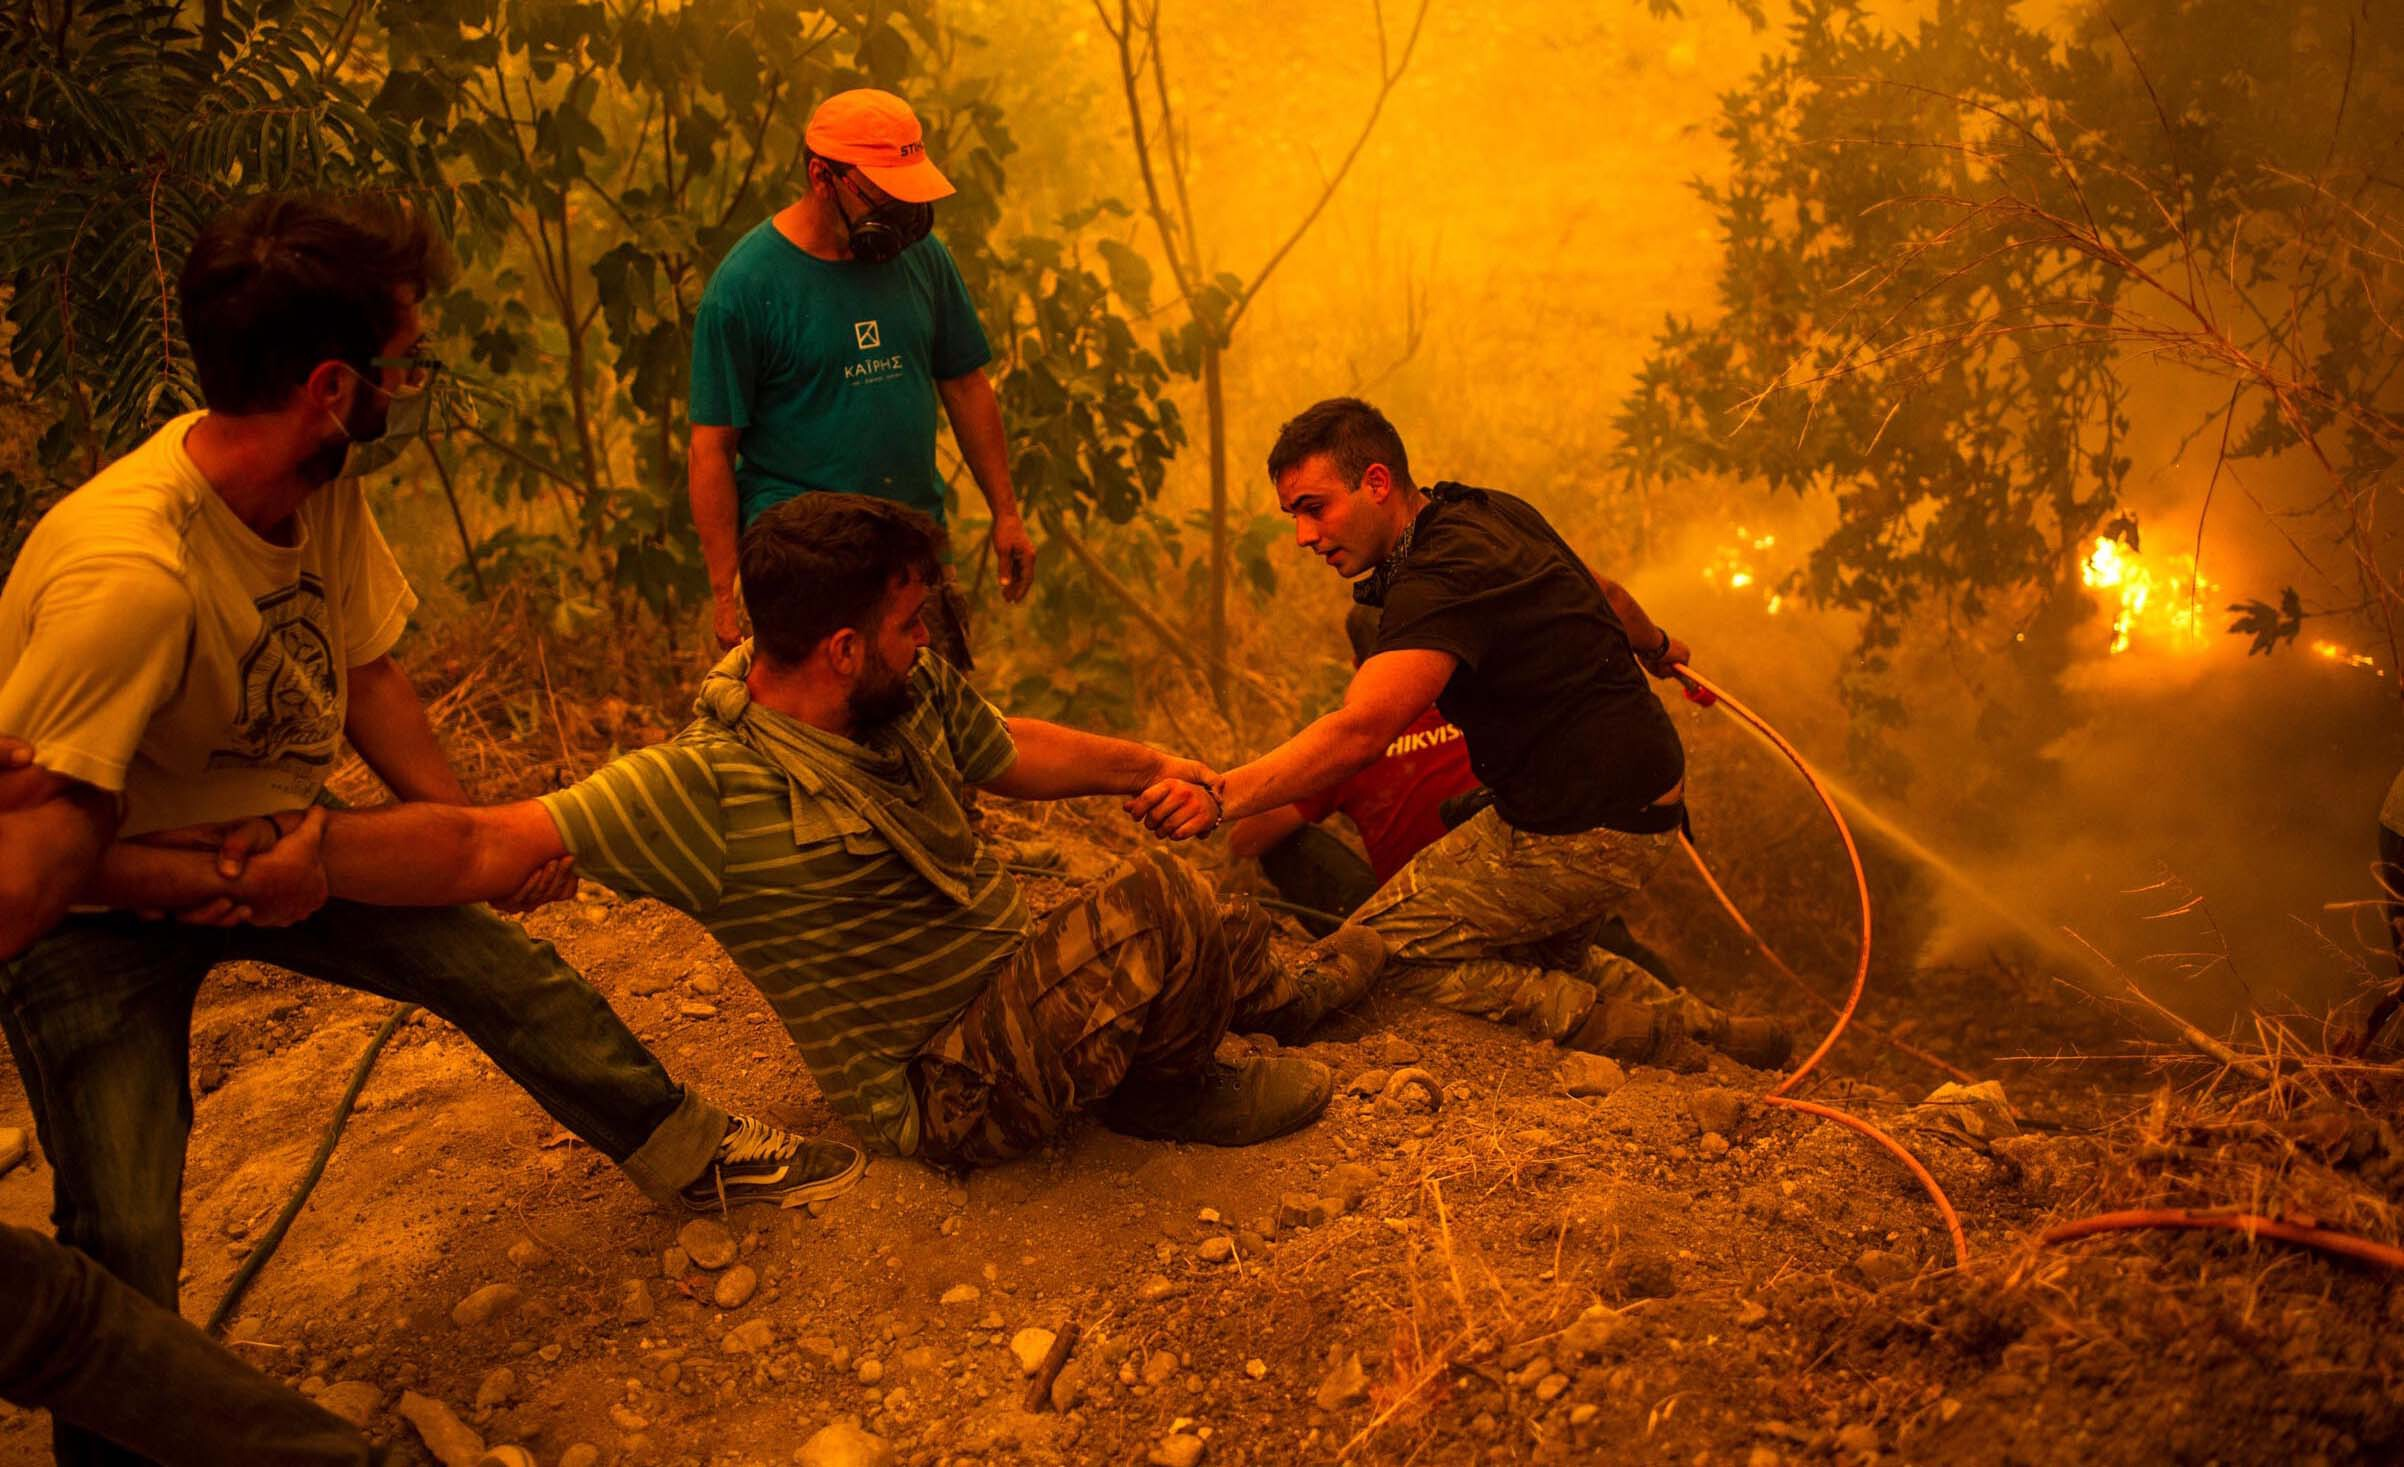 Why wildfires happen: Debunking the myth that arson is to blame more than climate change